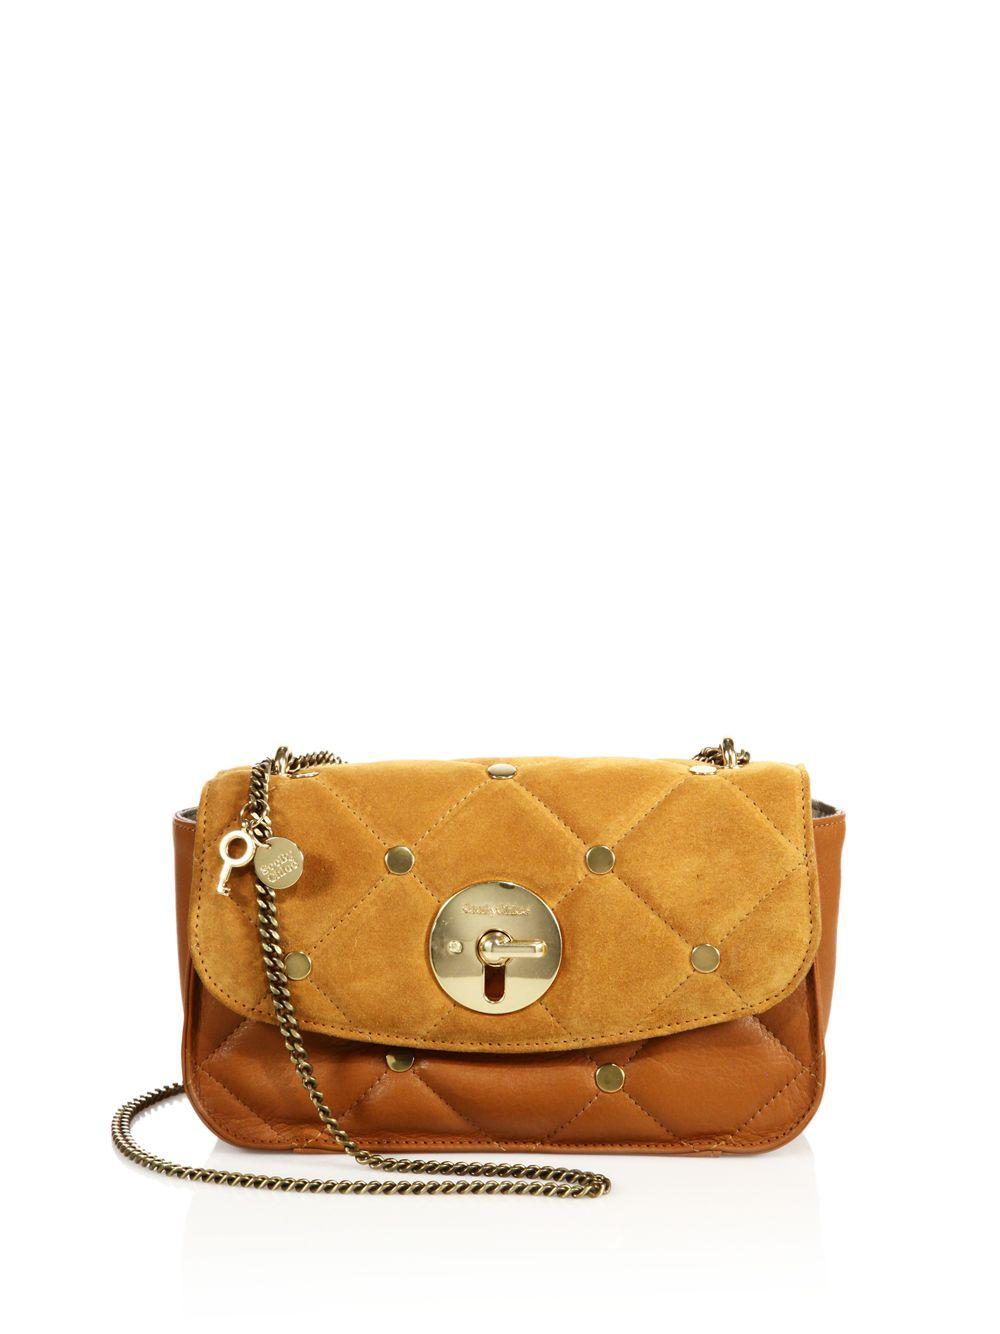 Polina Evening Bag in Sandy Brown Metallic Cowhide Leather See By Chlo Nc9qQCR